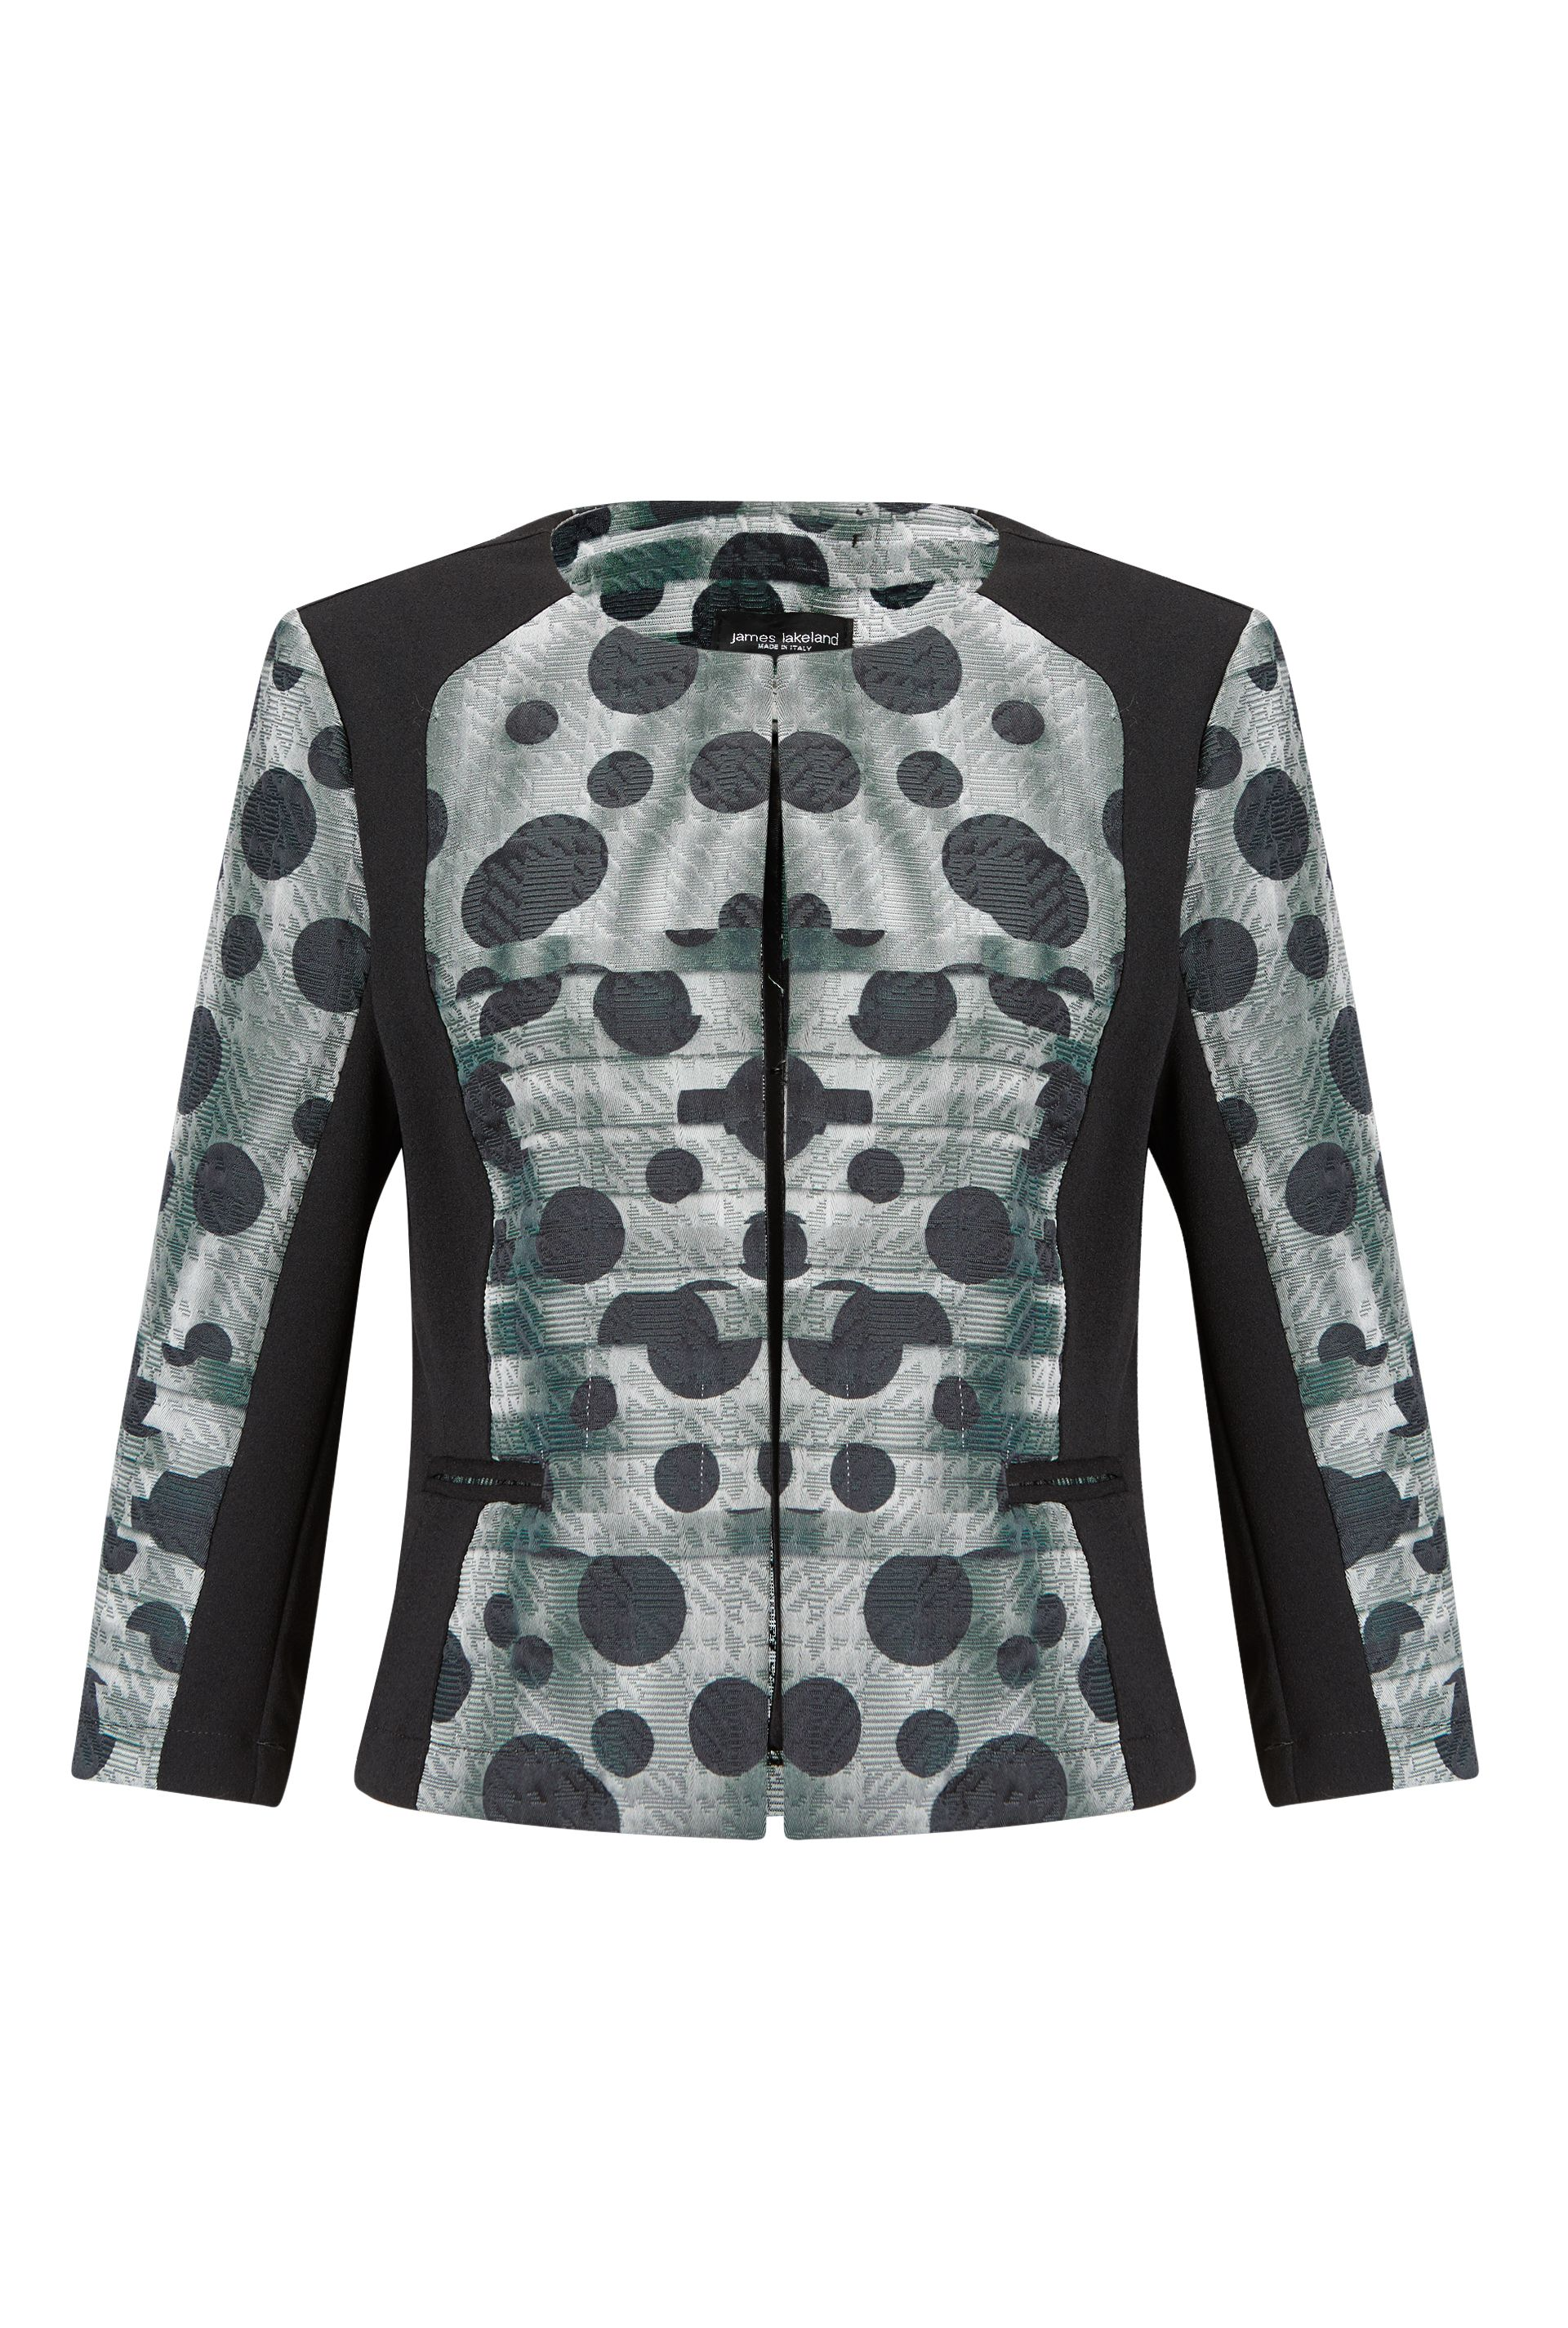 James Lakeland Dots Print Jacket, Grey